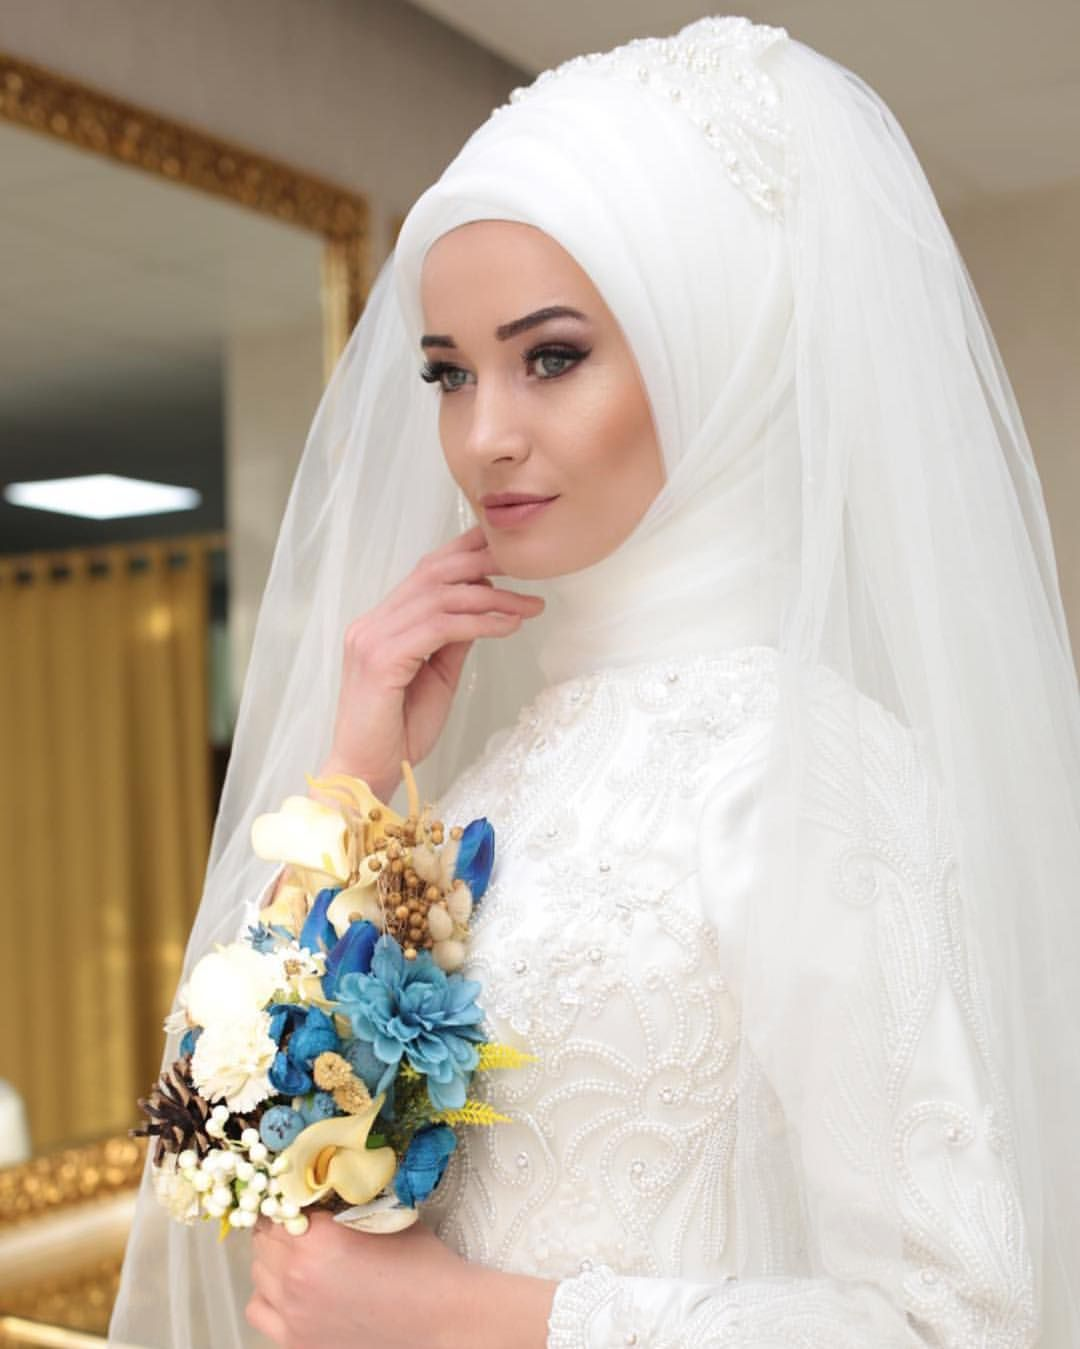 Middle eastern brides